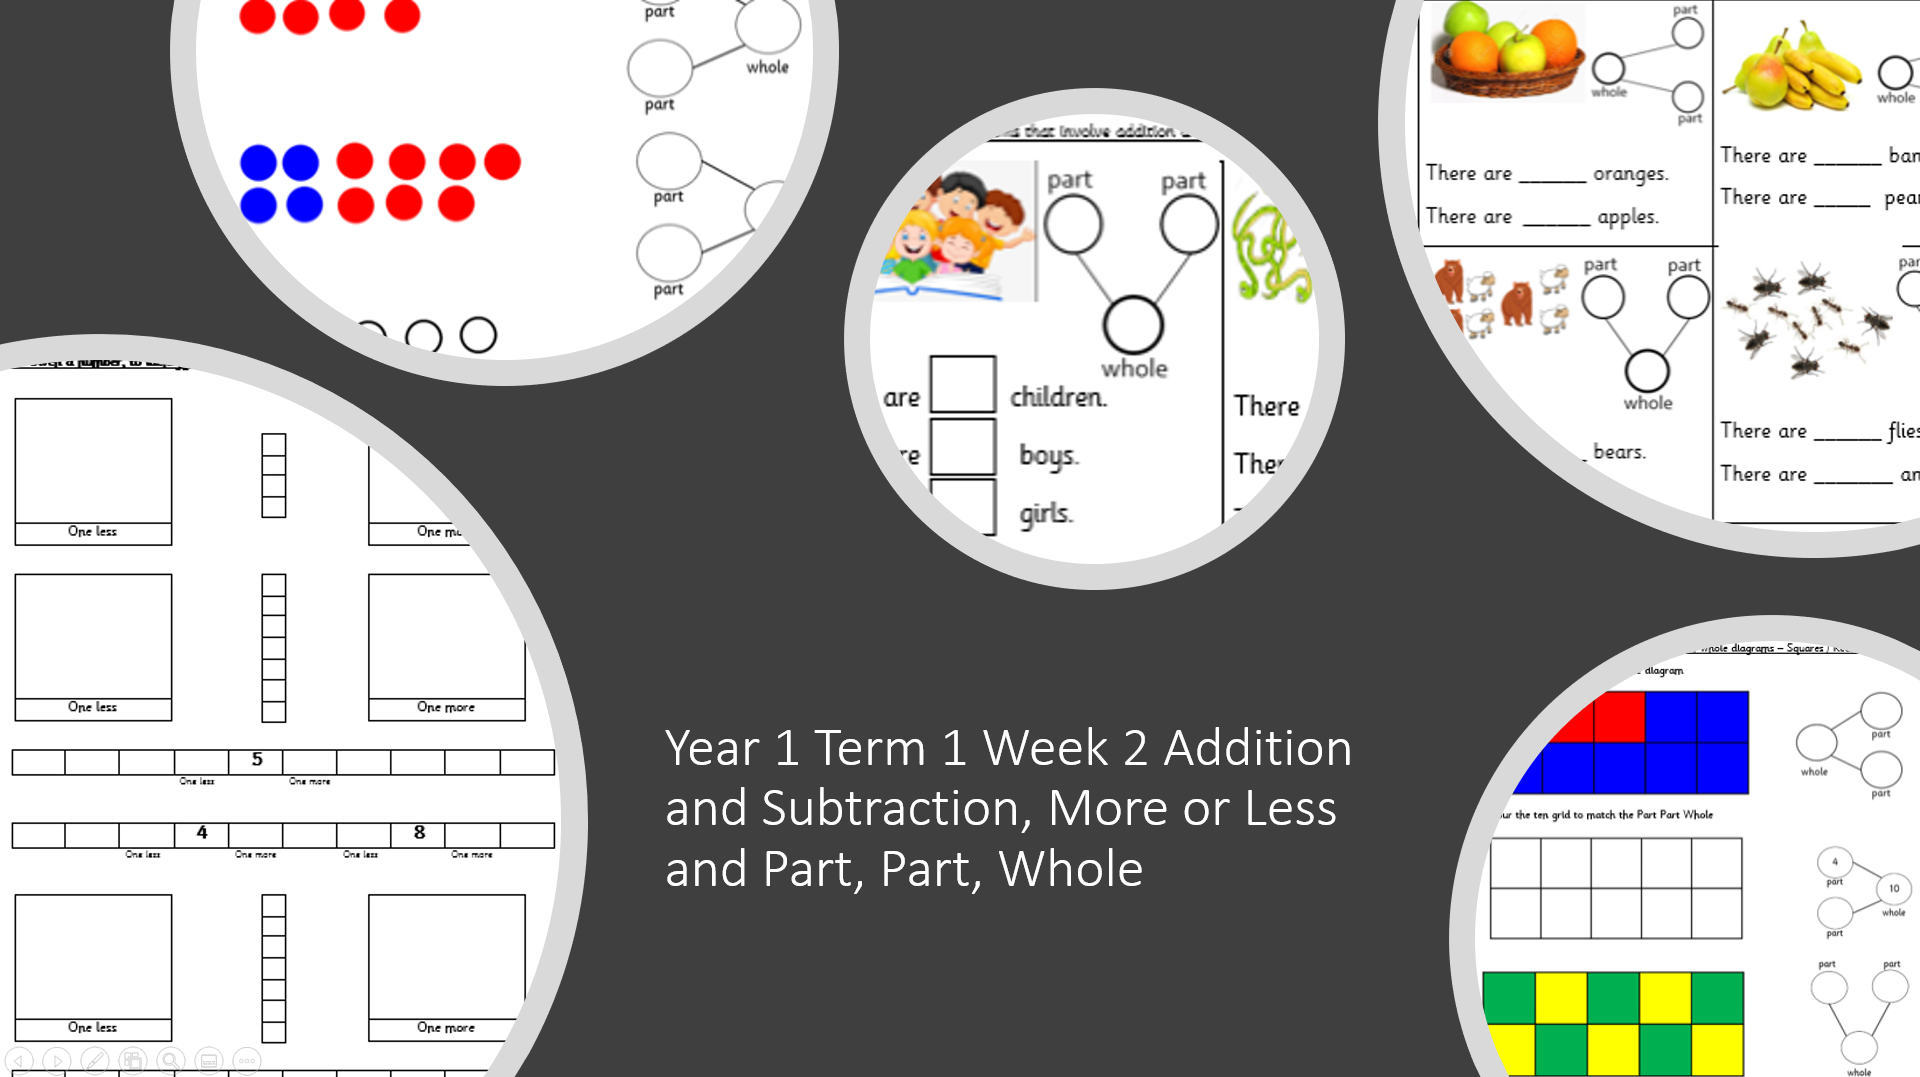 Year 1 Term 1 Week 2 More and Less, Part, Part, Whole addition and subtraction - school and distance learning.